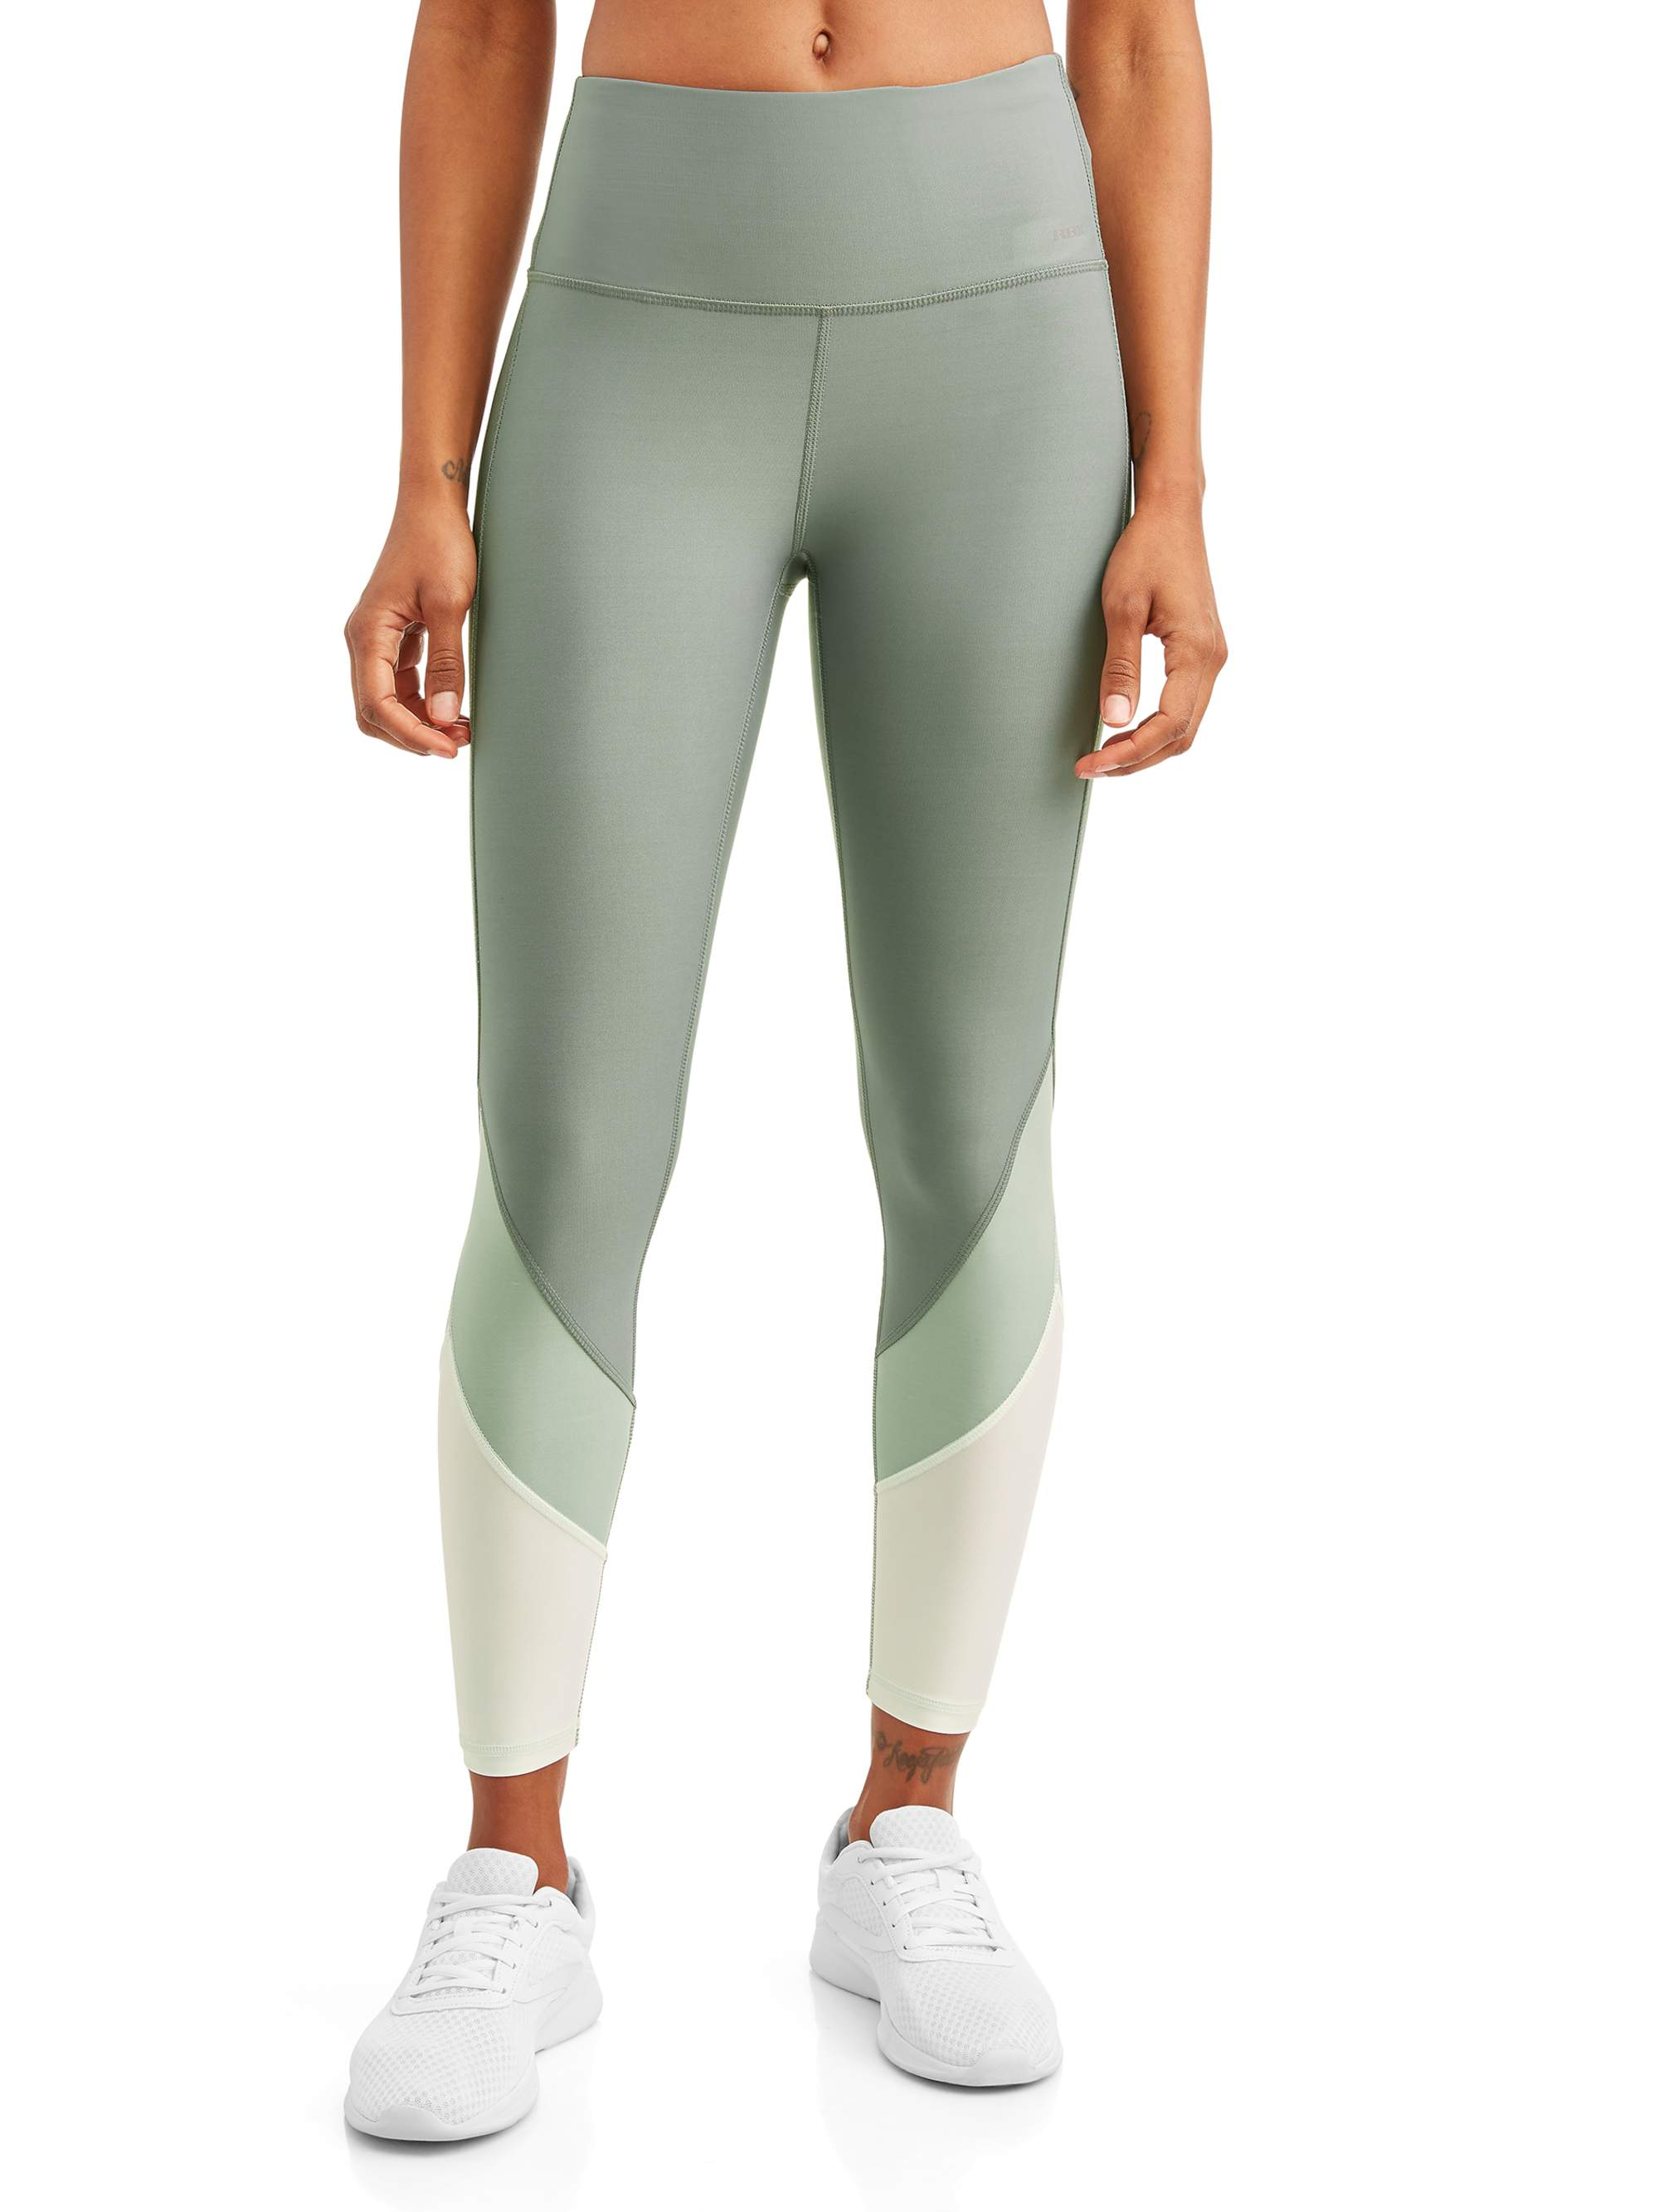 0bc6d73a19cabf RBX - Women's Active 25-7/8 Color Block Legging - Walmart.com